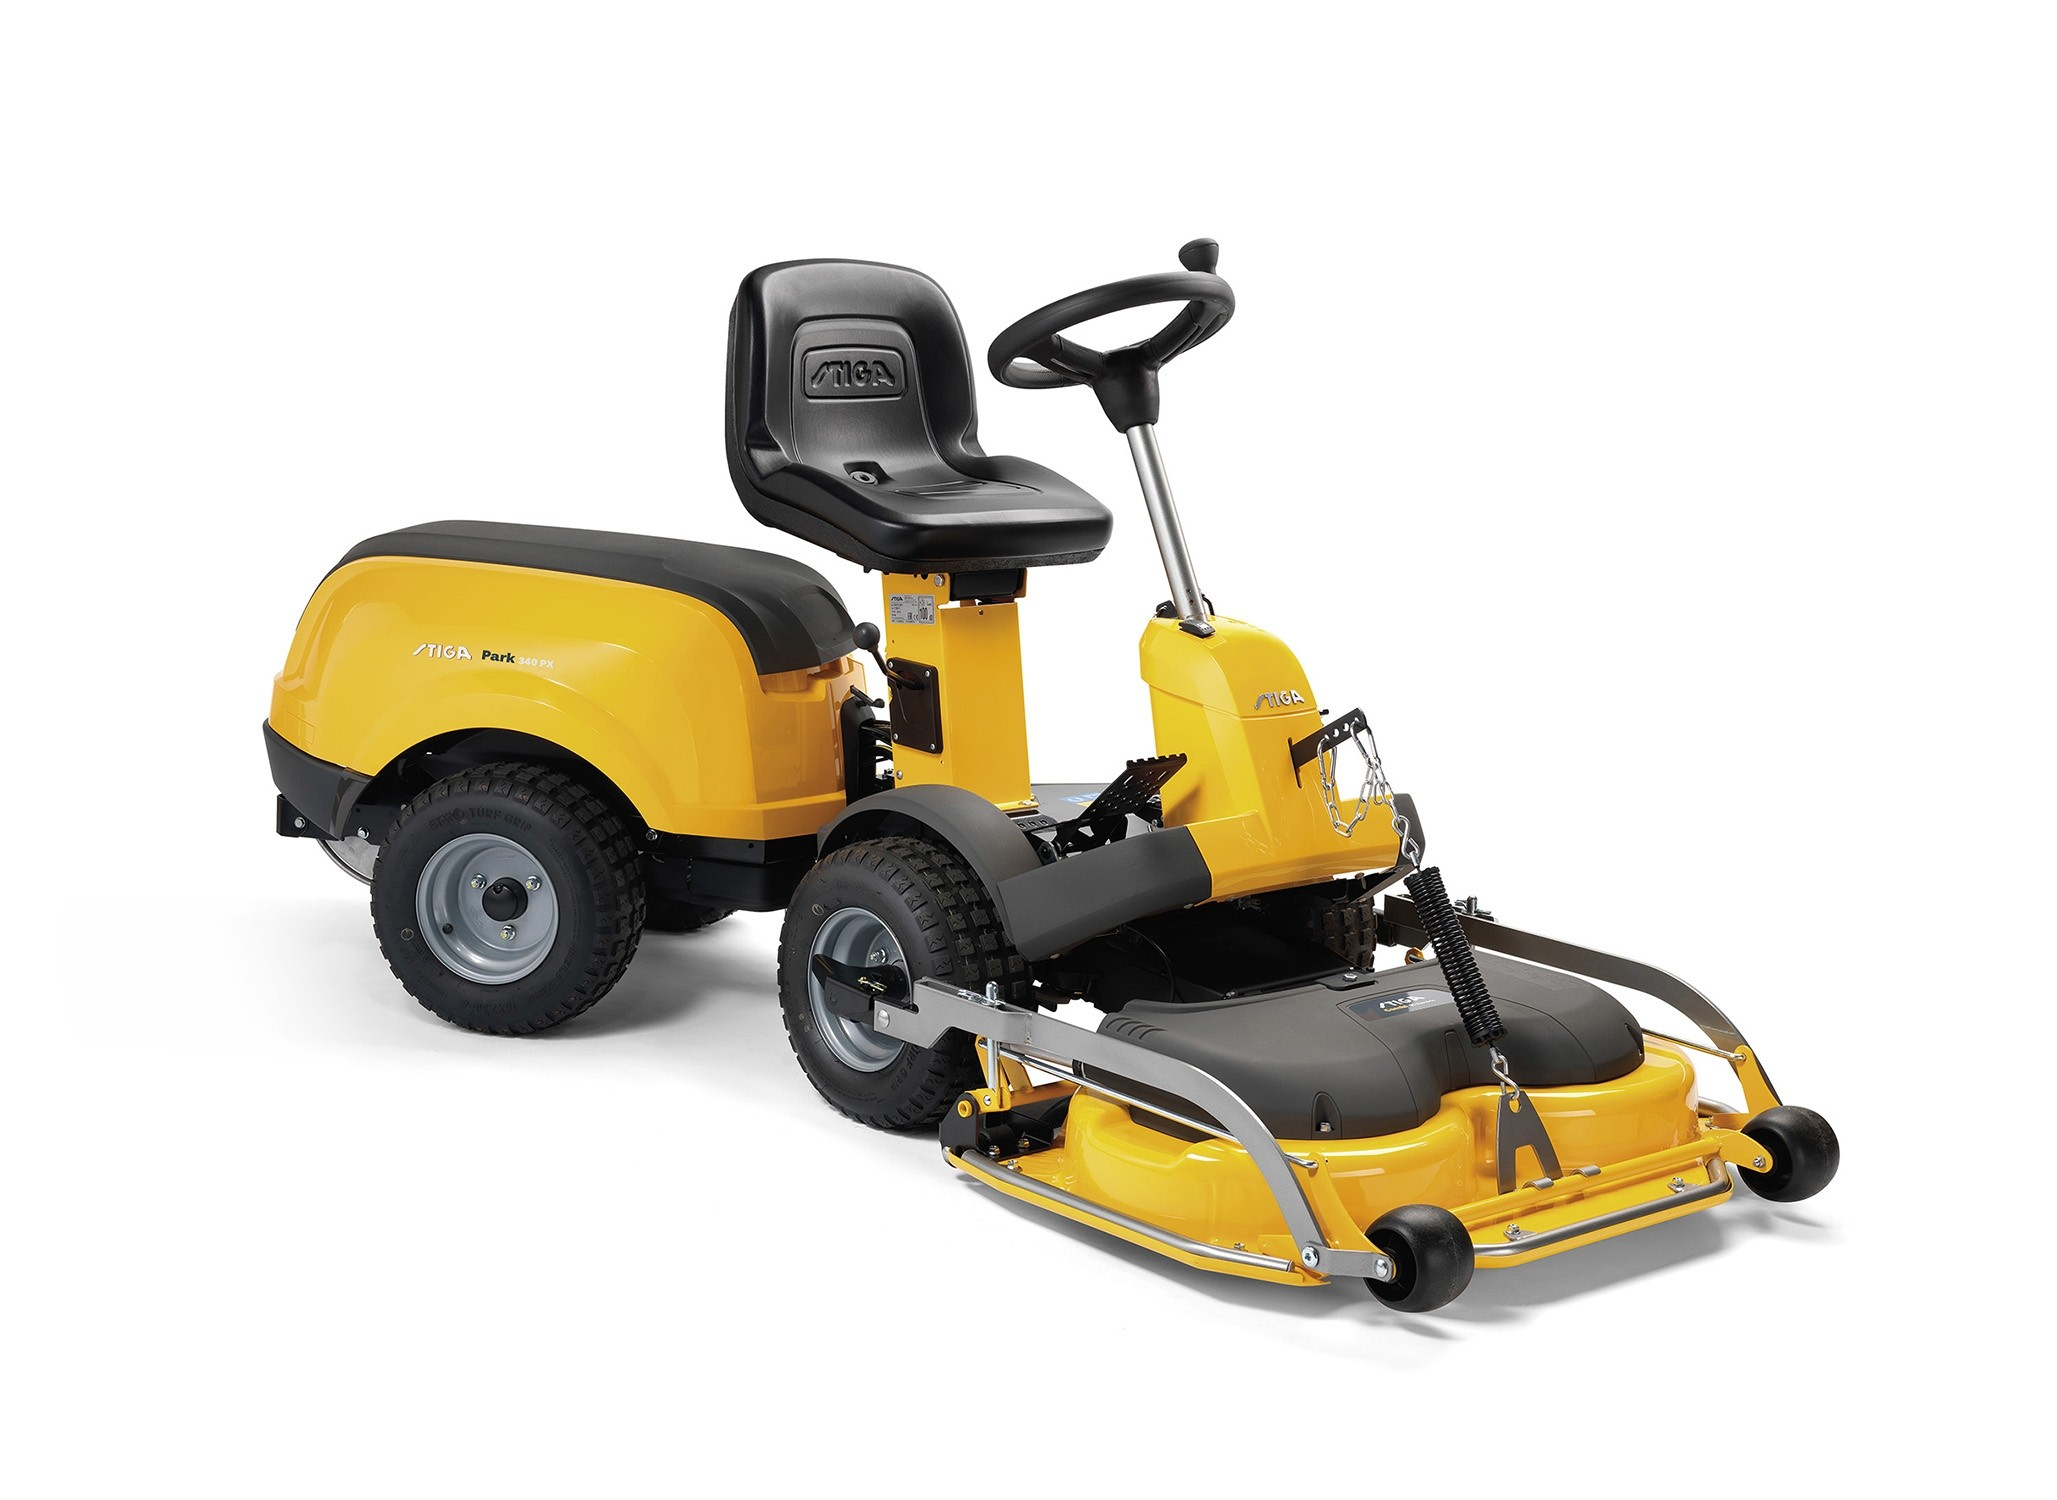 Stiga Park 340 PX 4WD Ride On Lawnmower with 95cm Combi Cutter Deck